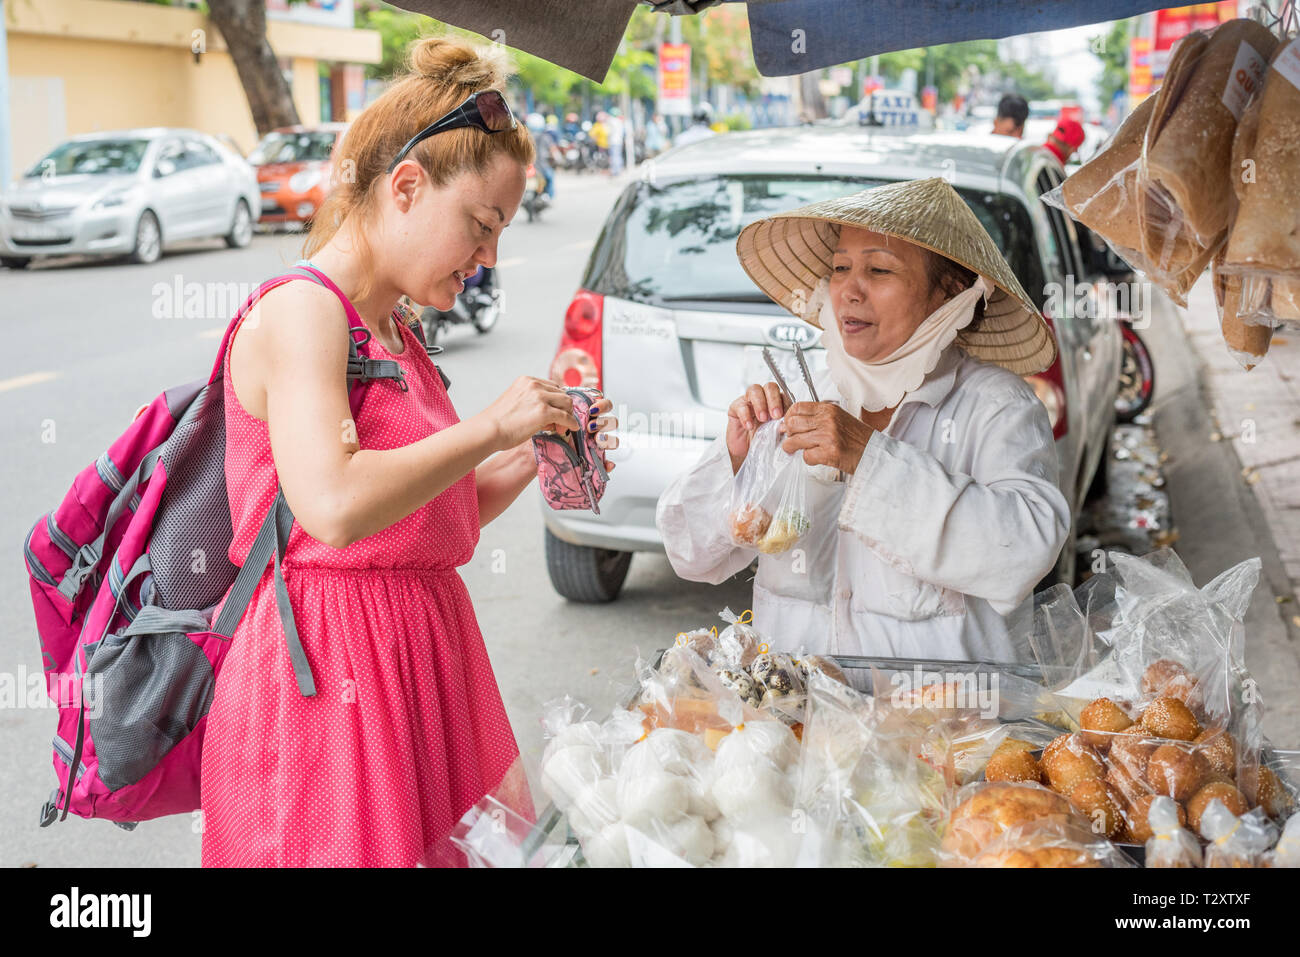 Nha Trang, Vietnam - May 5, 2018: A solo woman traveler buys sweets from a Vietnamese lady in an Asian conical hat who sells desserts out of her cart. Stock Photo